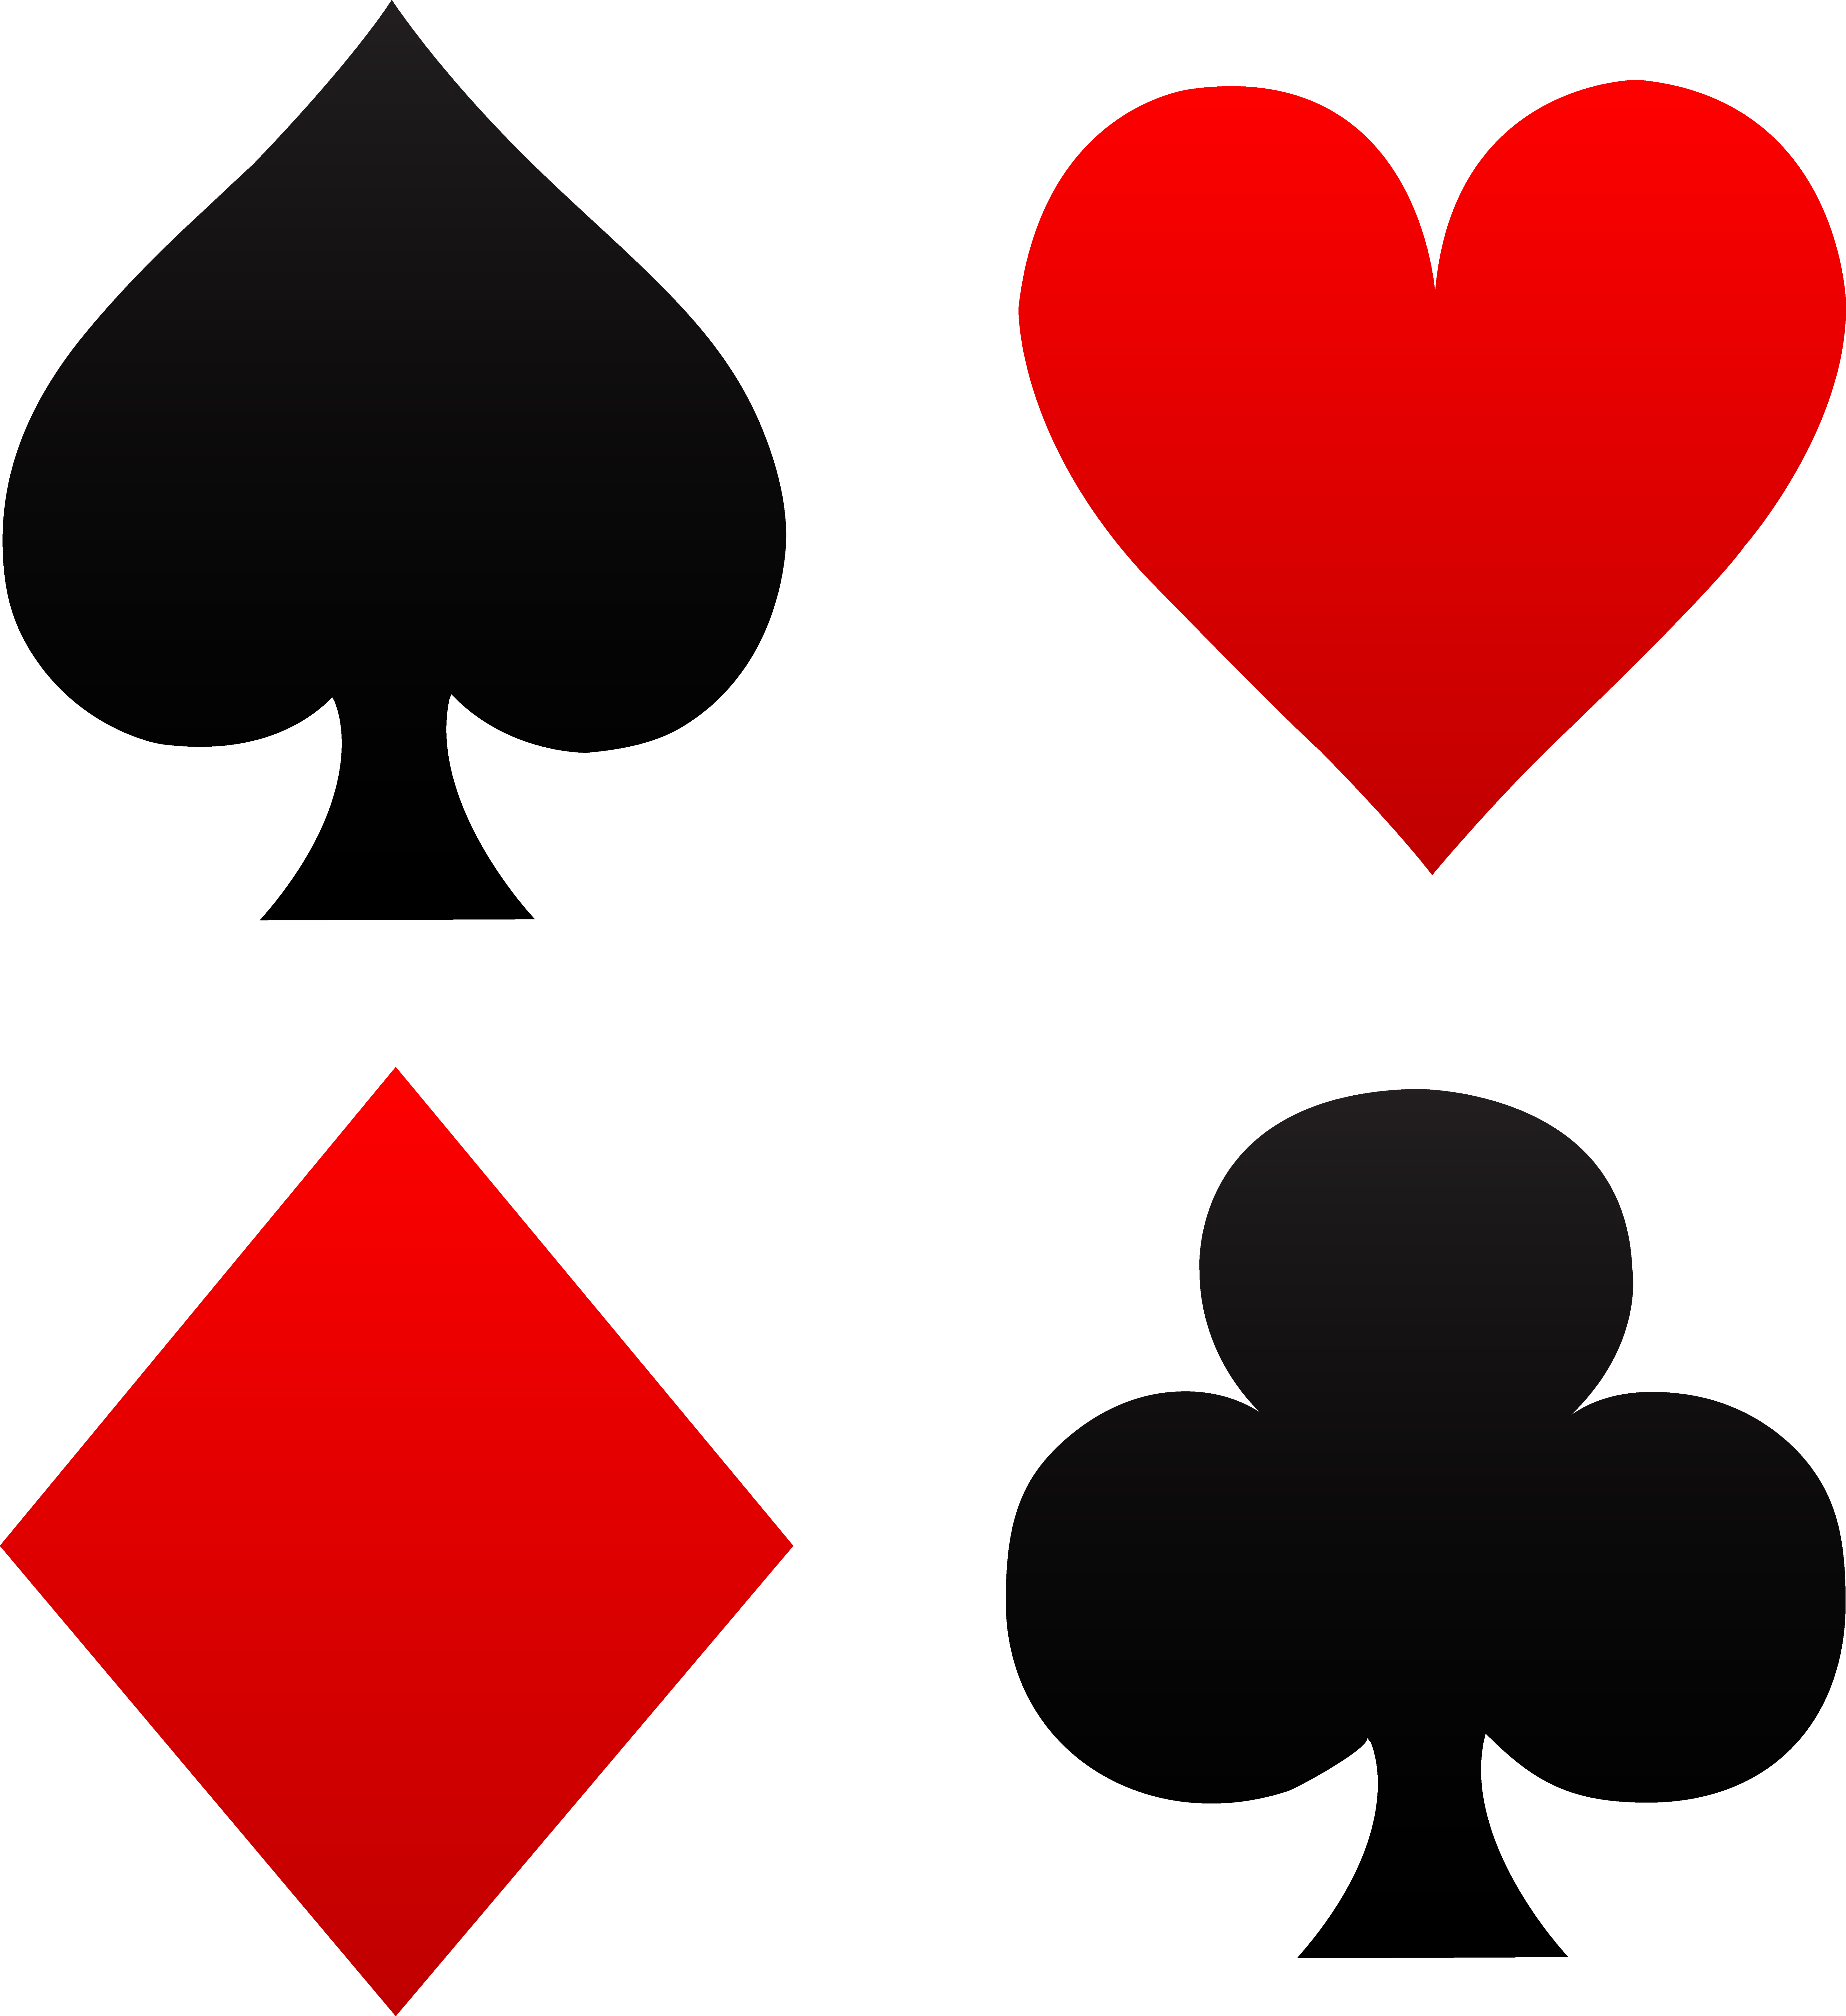 Ace of spades clipart.